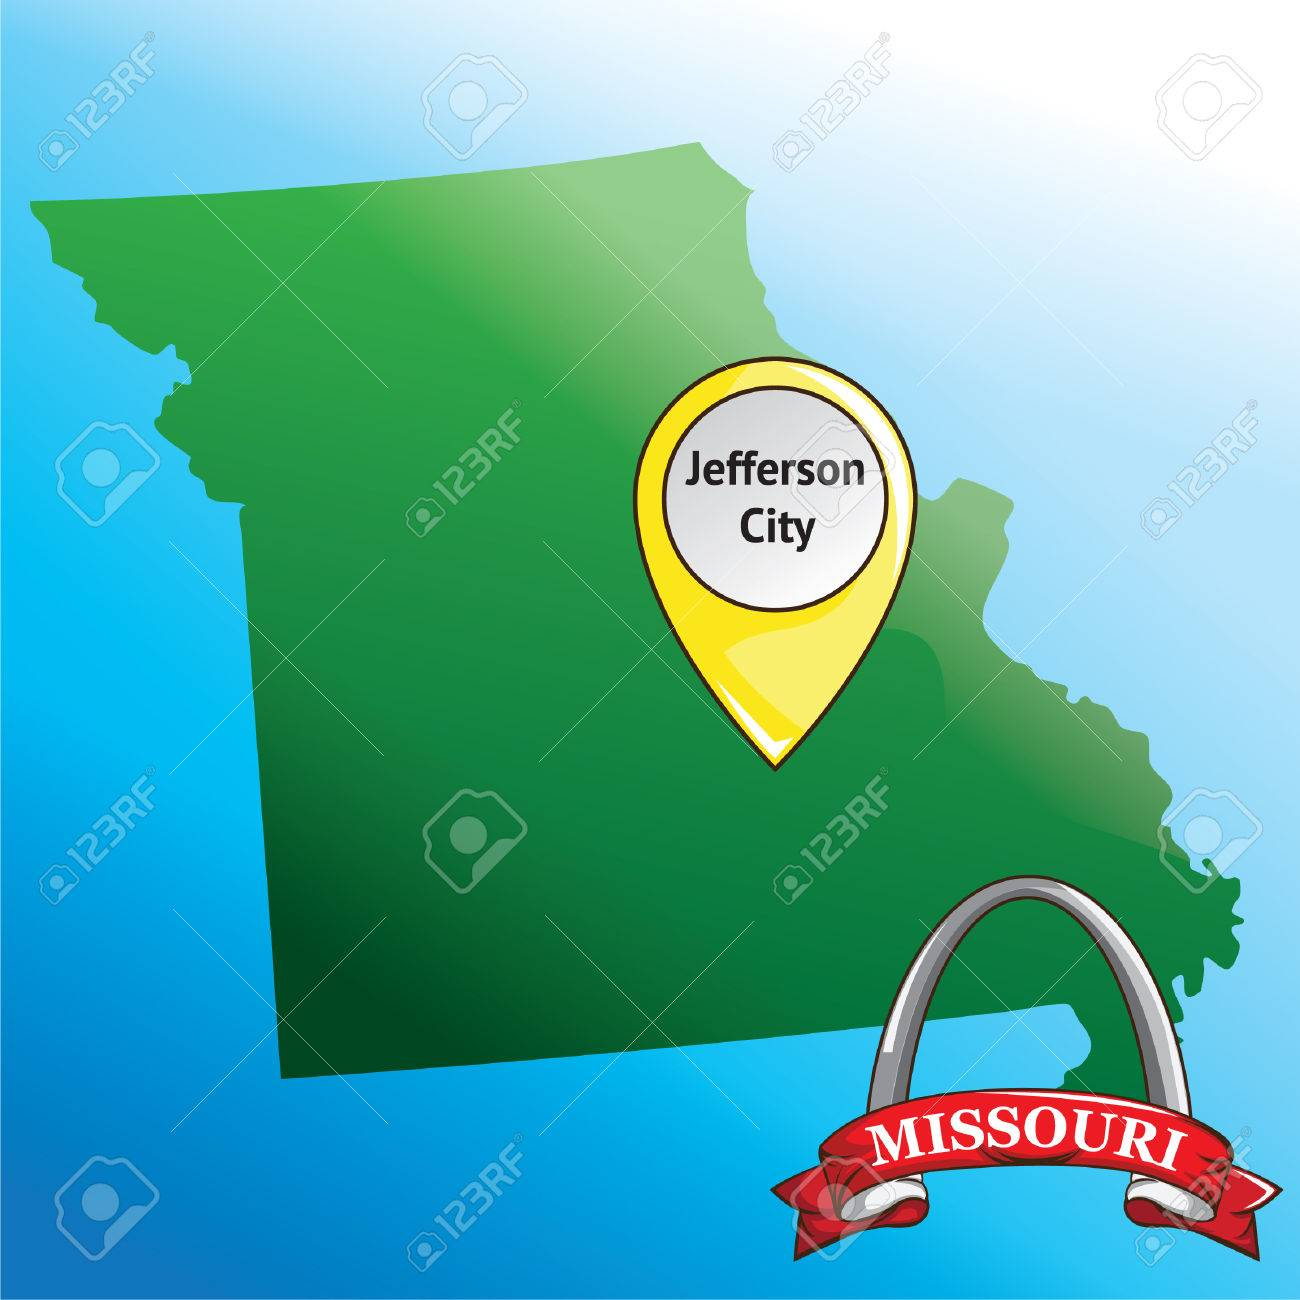 Map Of Missouri State With Gateway Arch Royalty Free Cliparts - Missouri state map usa